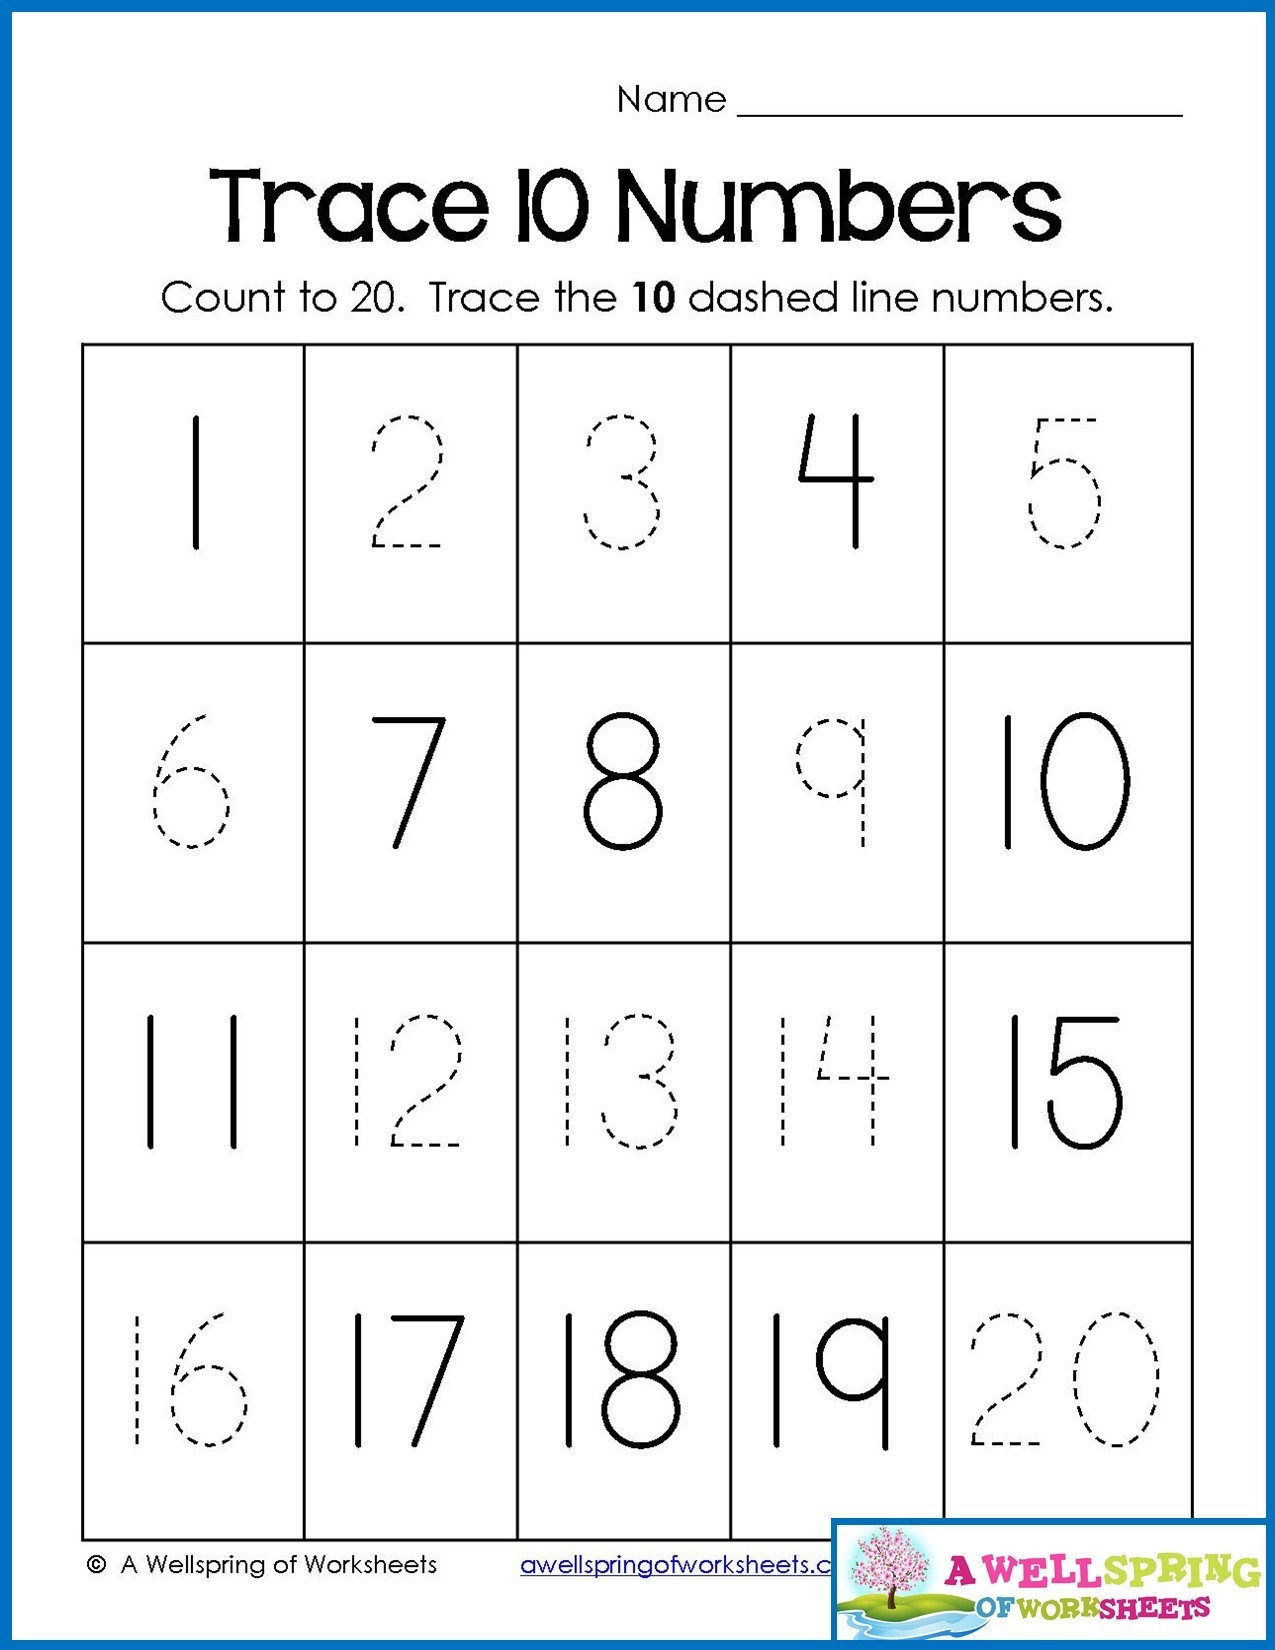 Tracing Numbers 1 20 Printable 4 Counting Worksheets Preschool 1 20 Worksheets Schools